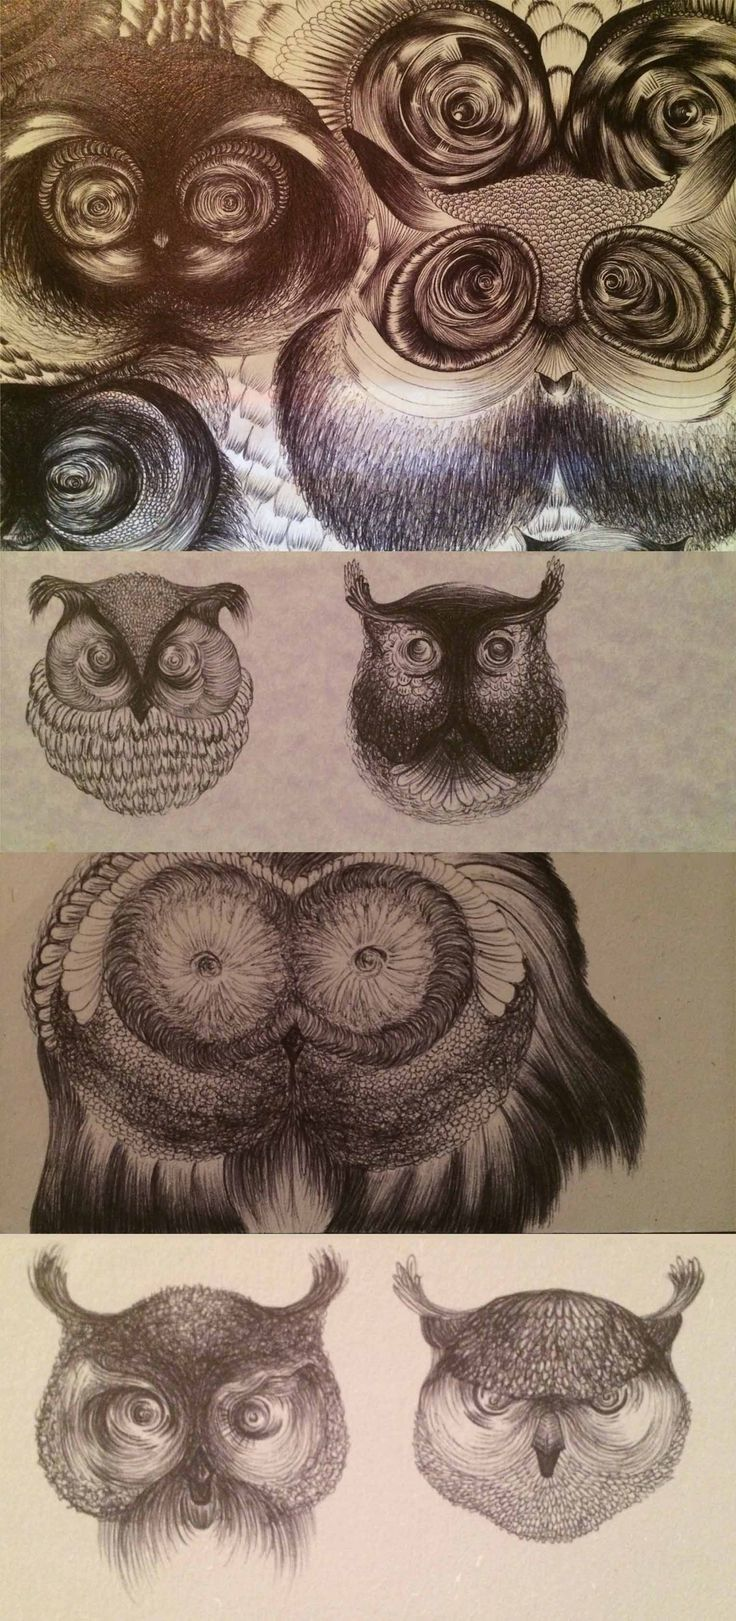 #OWL #FACES by Teresa Mazzanti